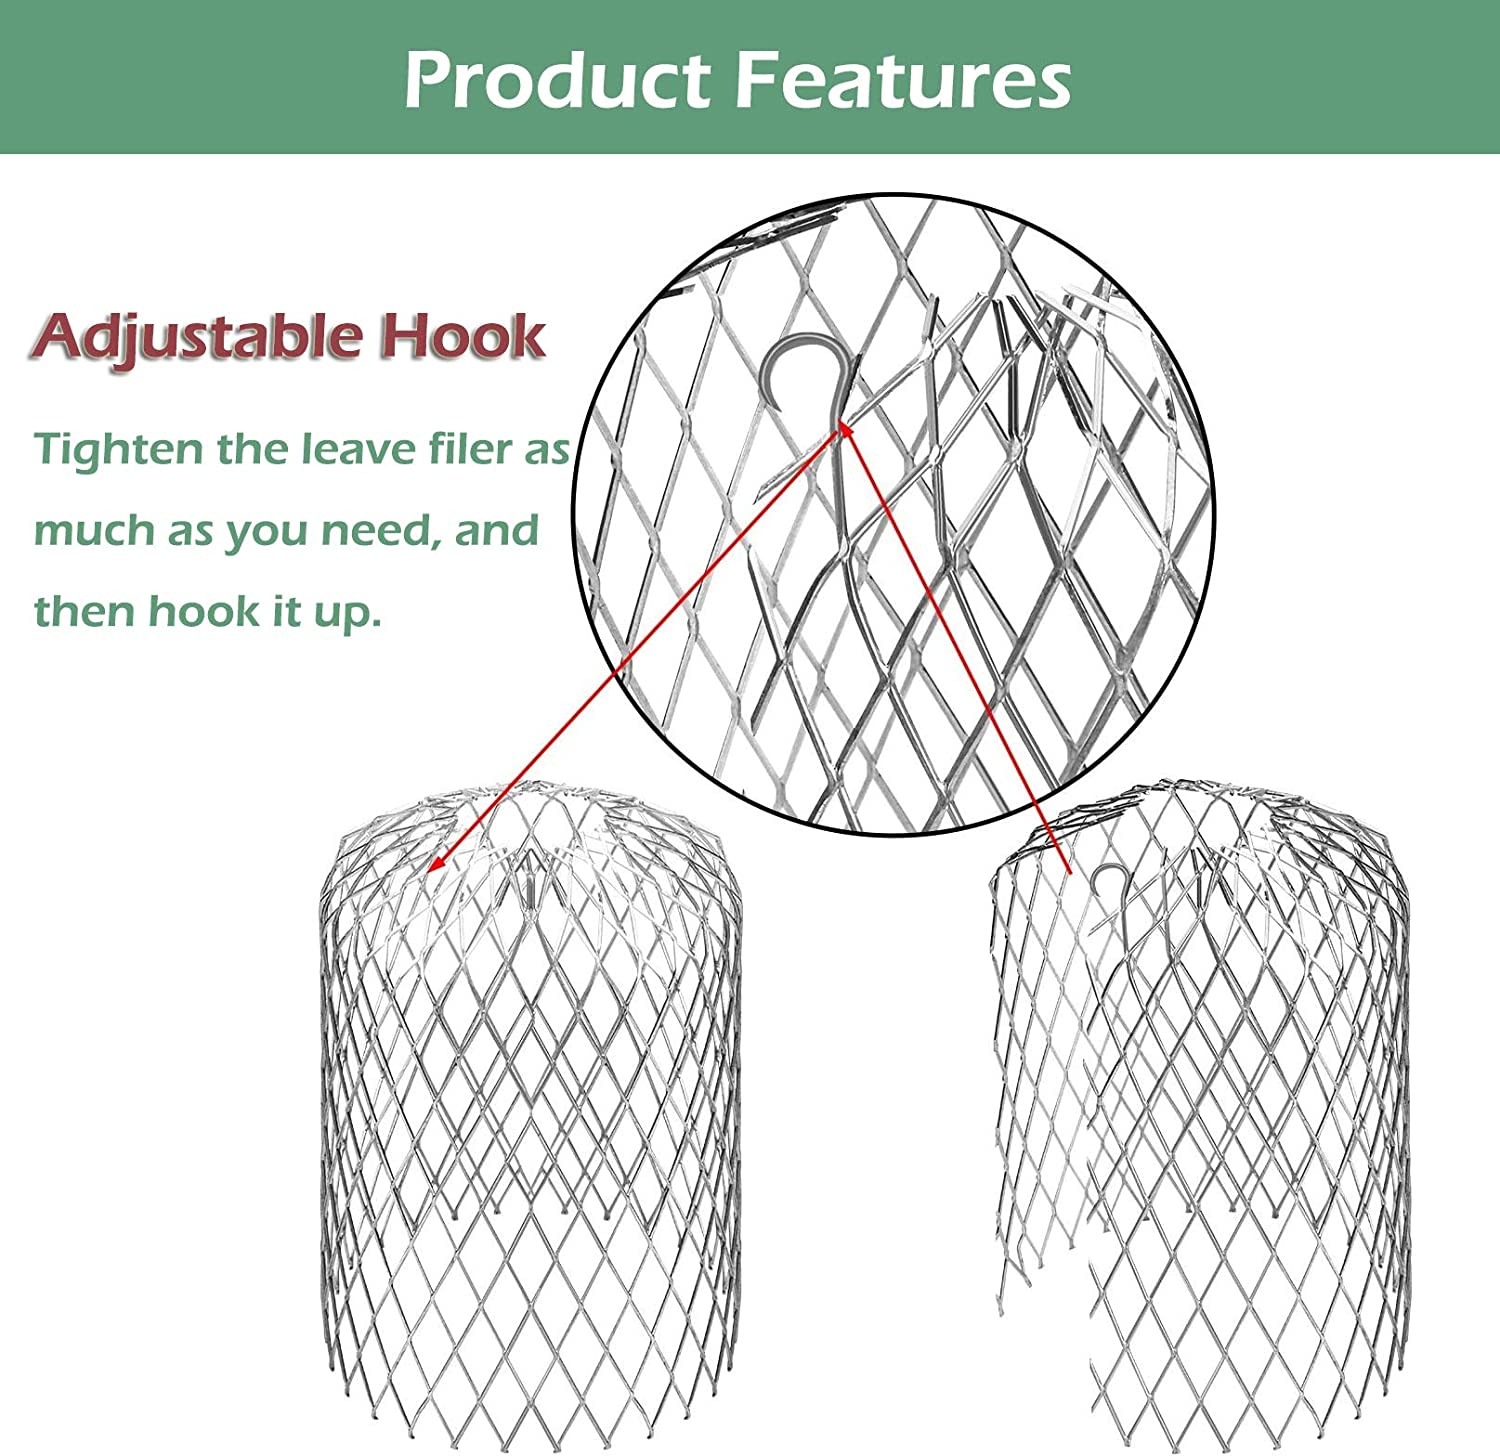 Rain Filter Gutter Guard Leaf Filters 4 Inch 6 Pack Expandable Aluminum Mesh Down-Pipe Cover Strainer Avoid Blockage from Leaves and Debris